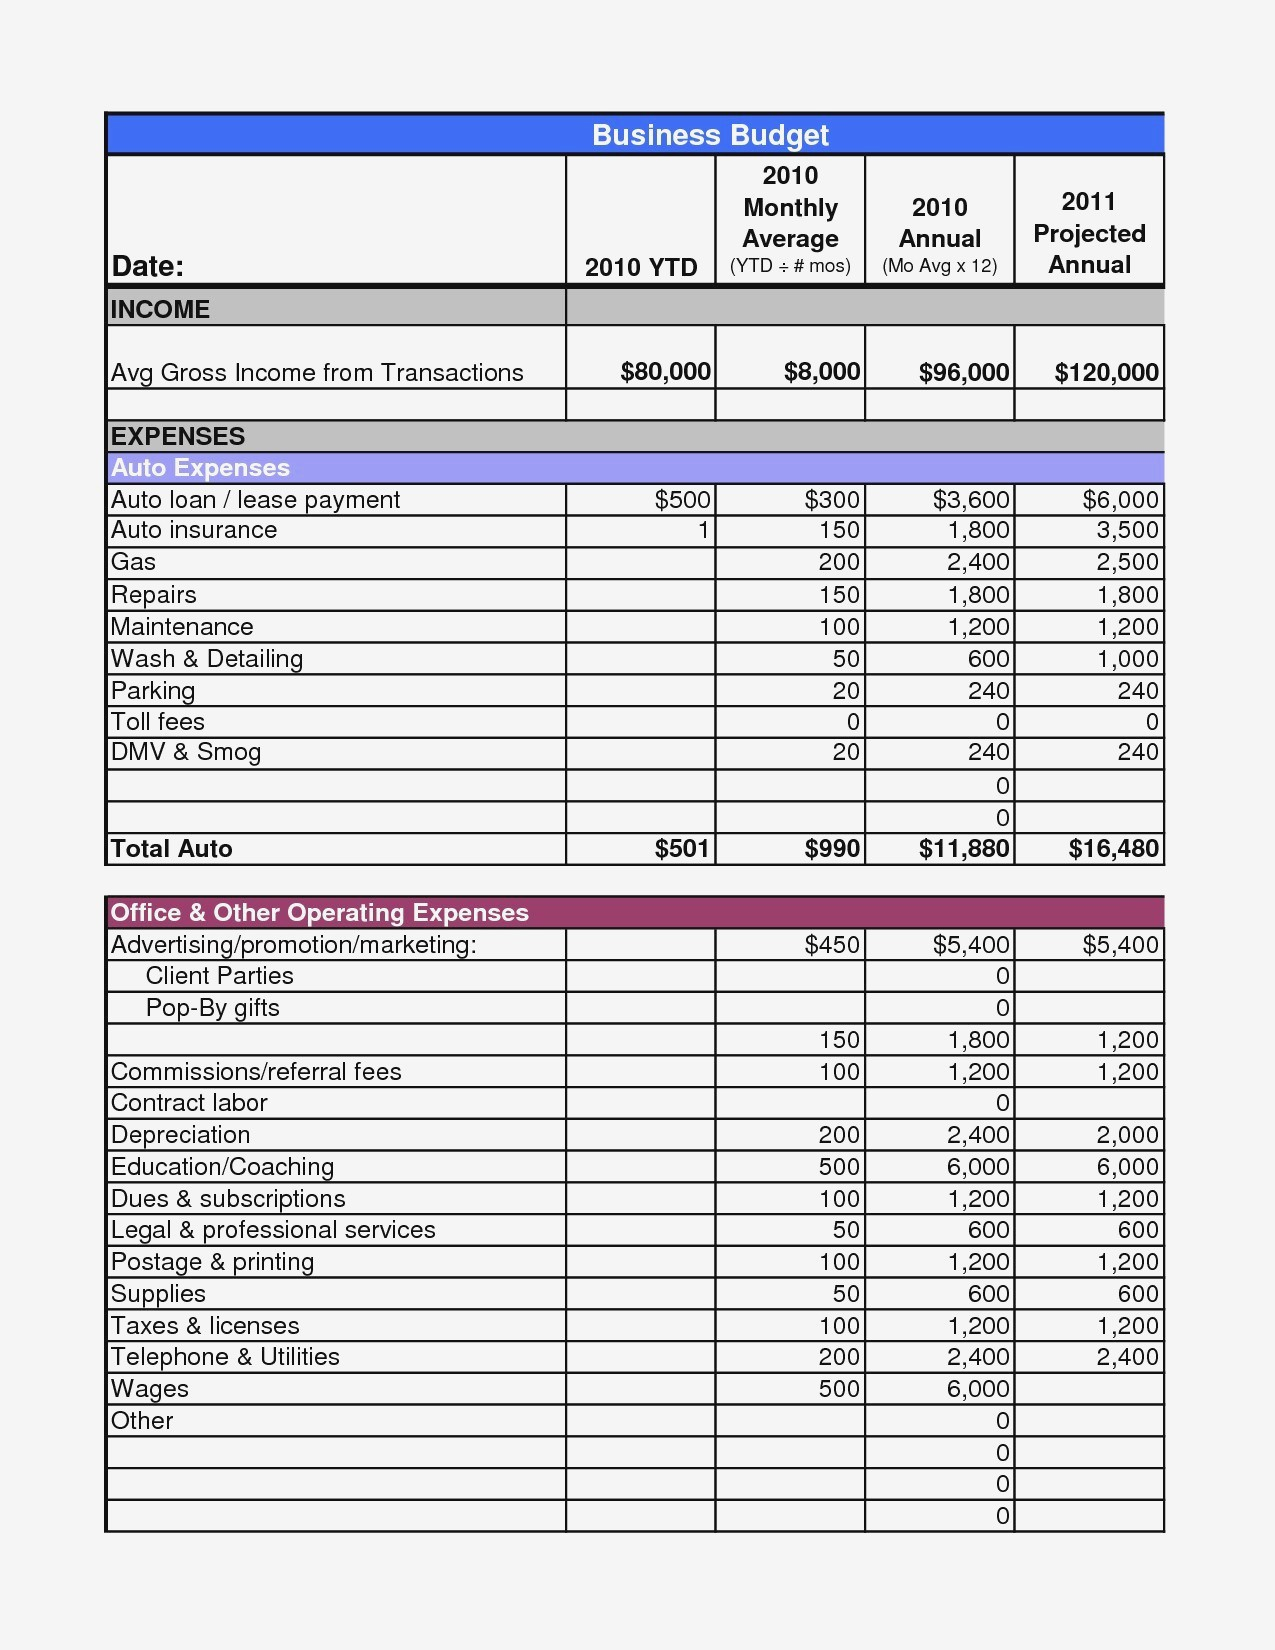 Annual Budget Template For Business Valid Small Bud New Templates Of And Small Business Annual Budget Template